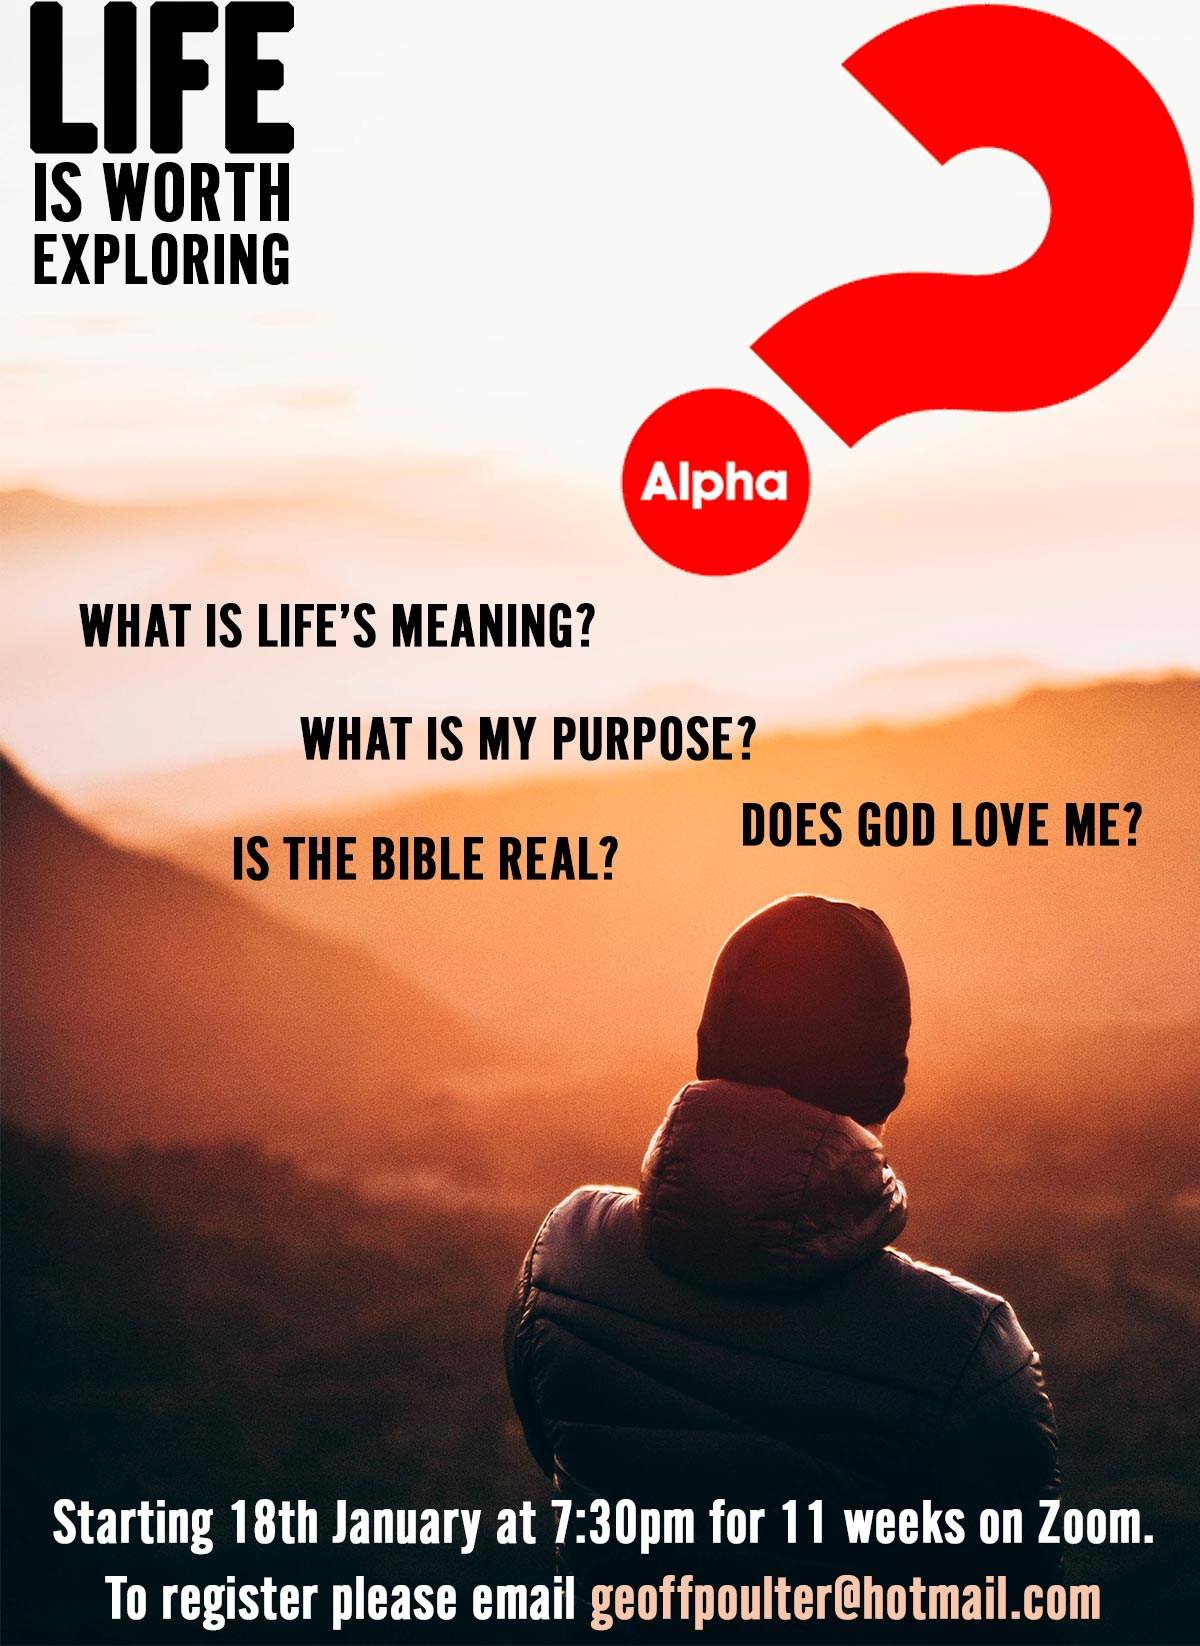 Alpha - Last Chance to Book